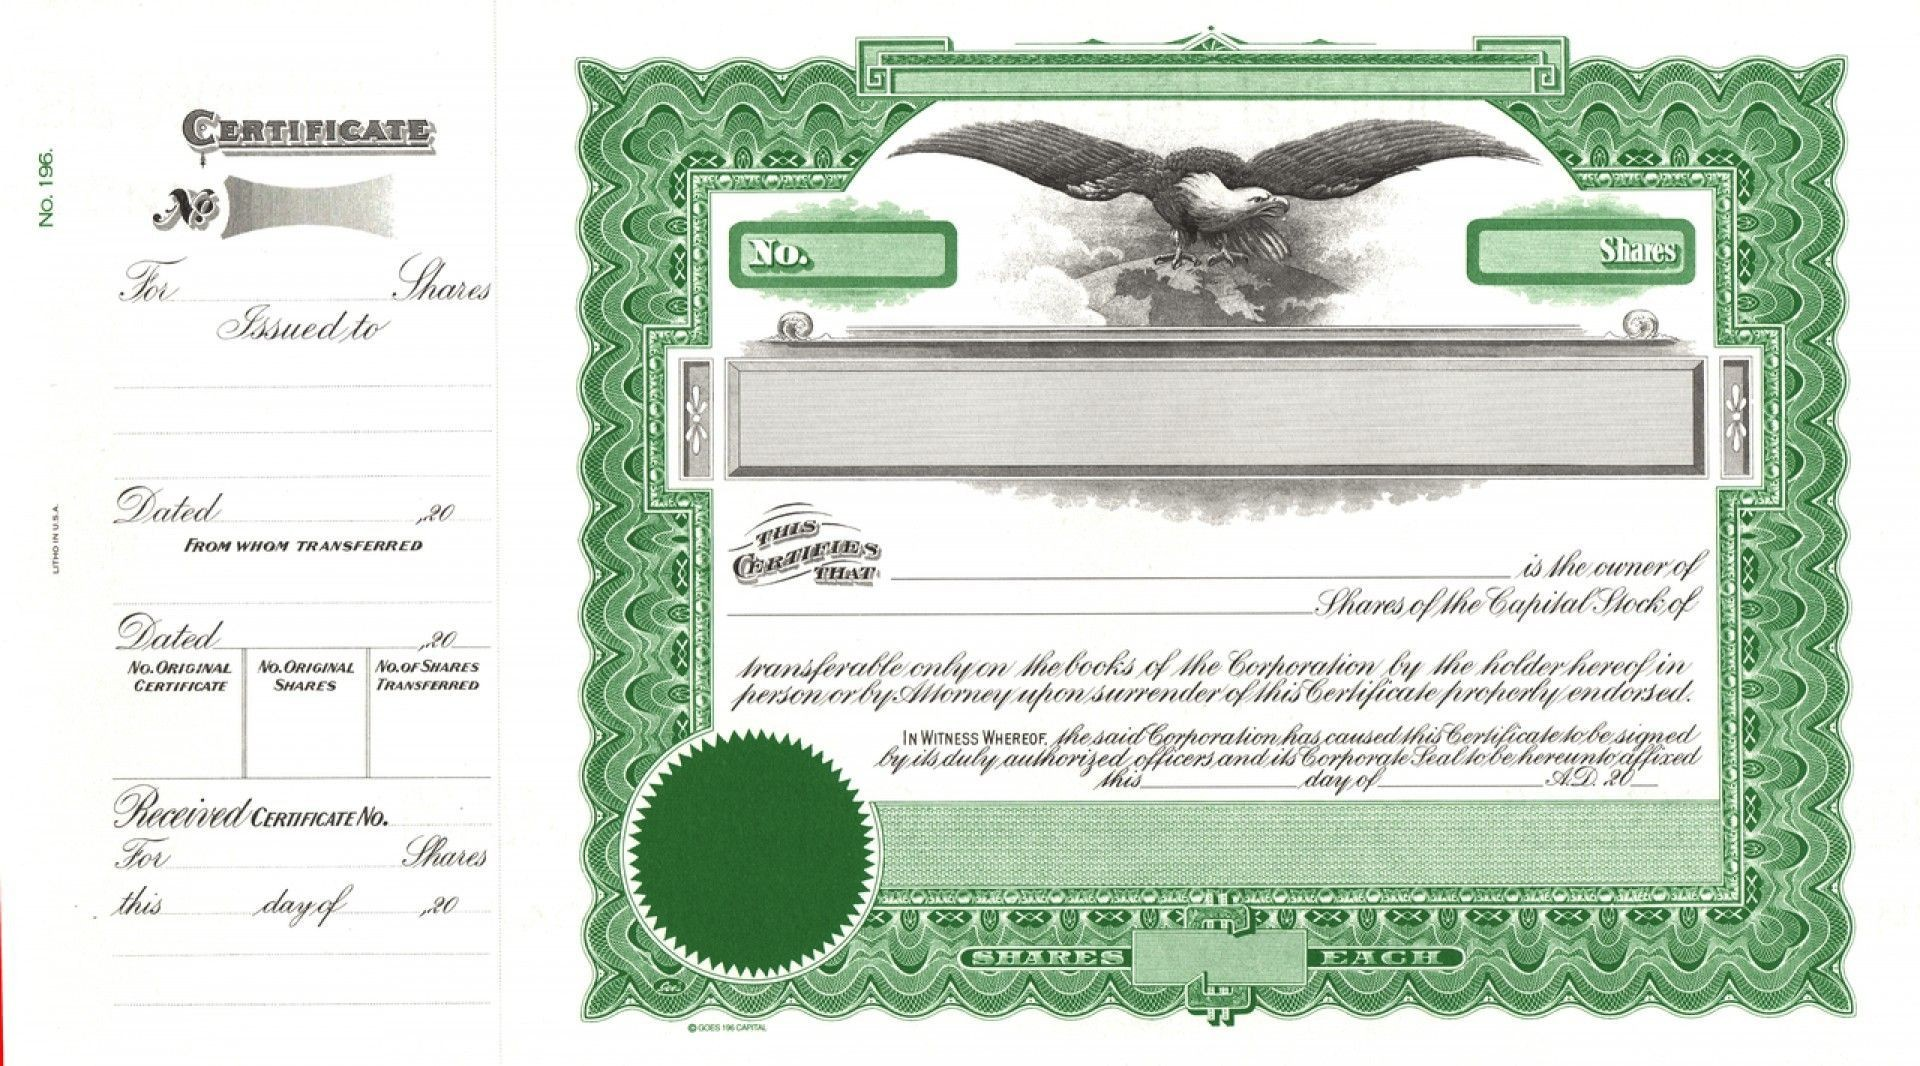 000 Wondrou Free Stock Certificate Template Highest Clarity  Word Form Downloadable1920